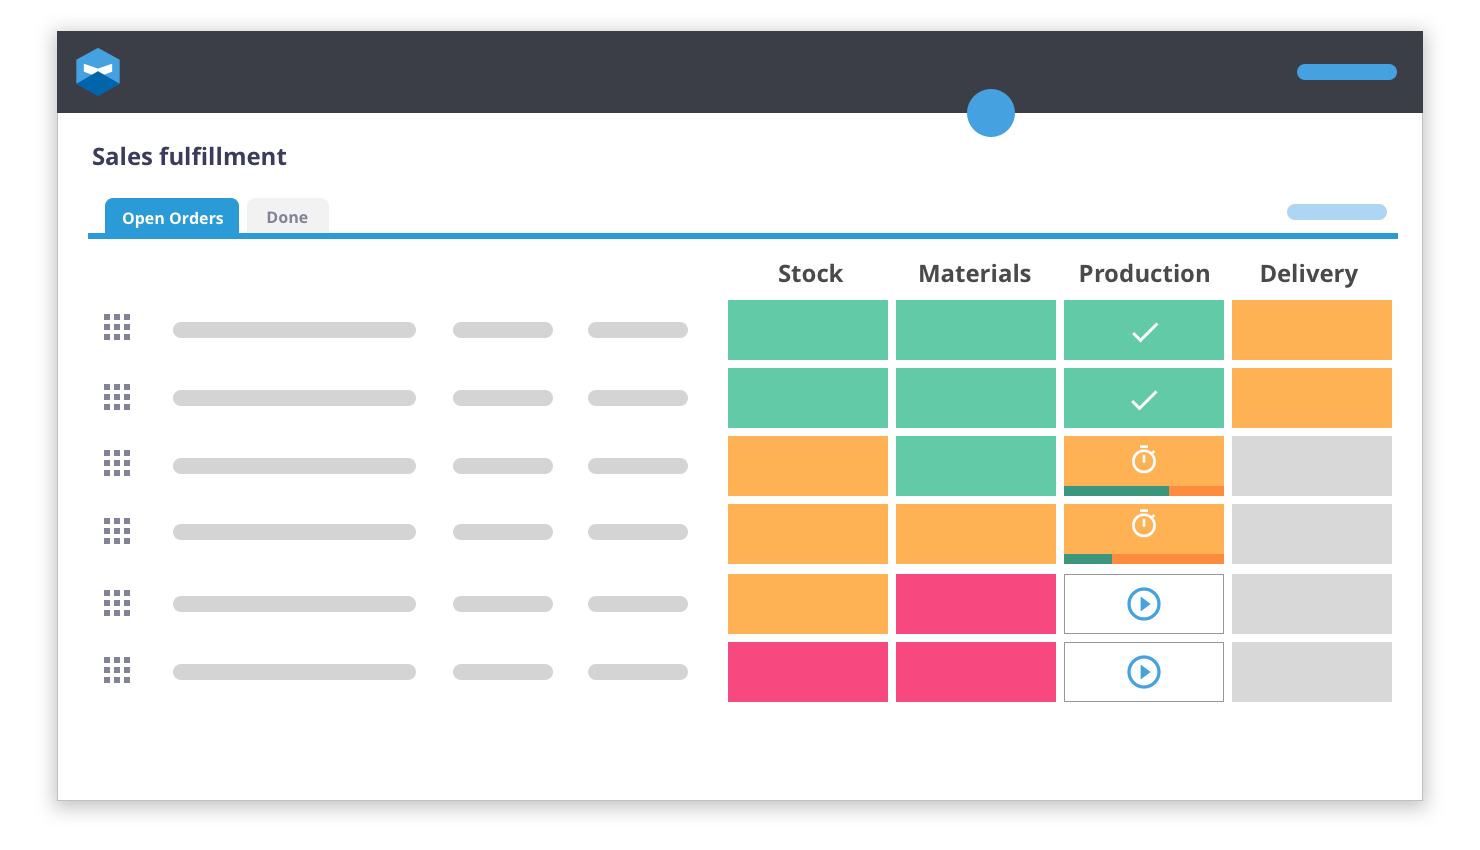 Katana isn't just made to help you with your stocktaking. It's been designed to make a seamless flow of your entire order fulfillment process. That means you can manage your inventory, production, and sales from a single dashboard.